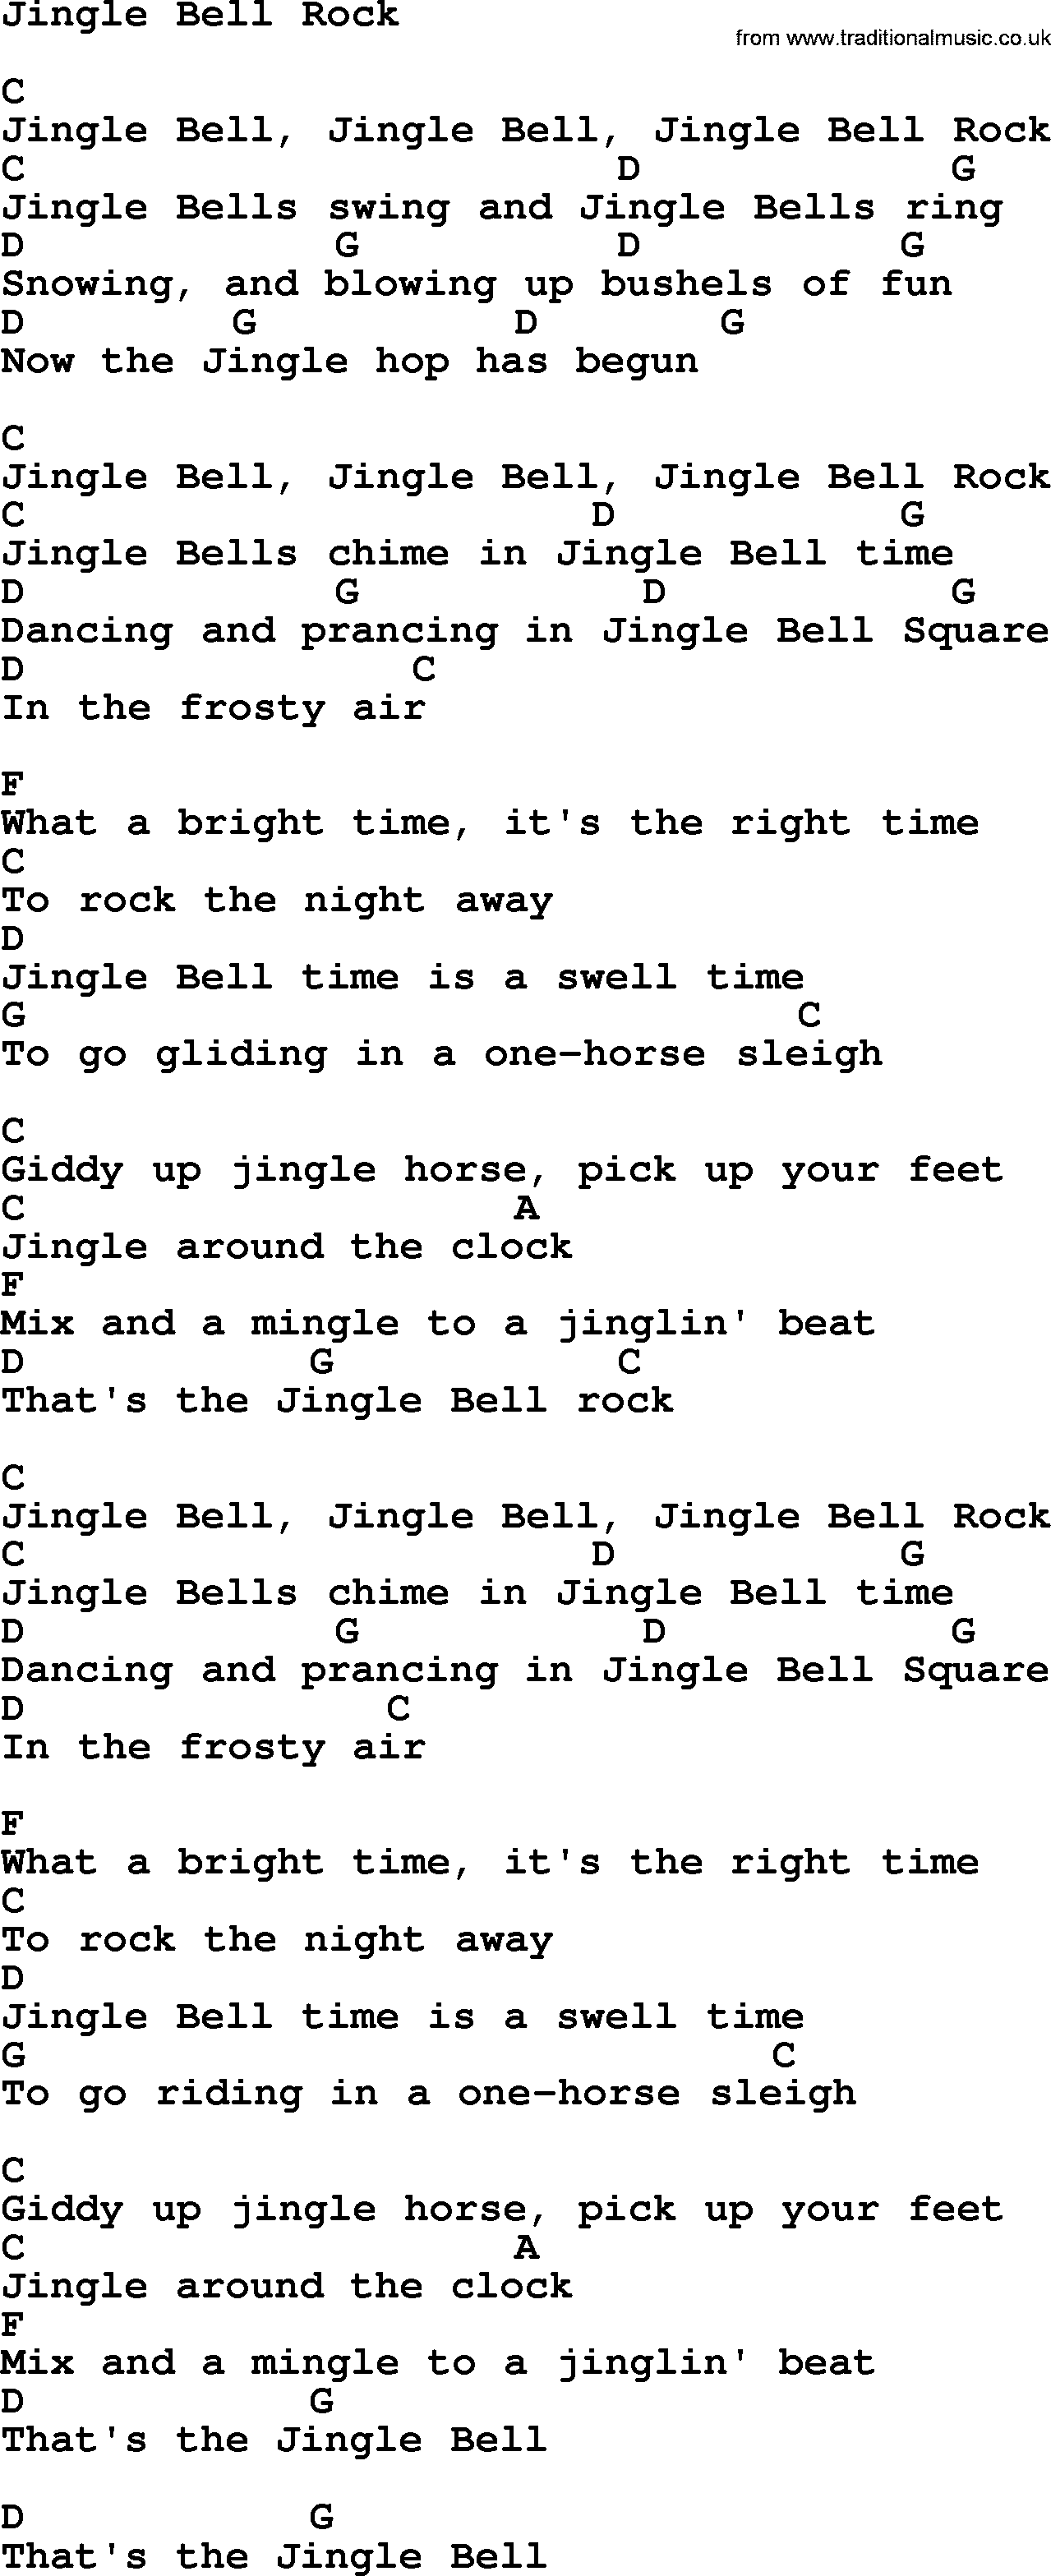 DISNEY CHARACTERS - JINGLE BELL ROCK LYRICS